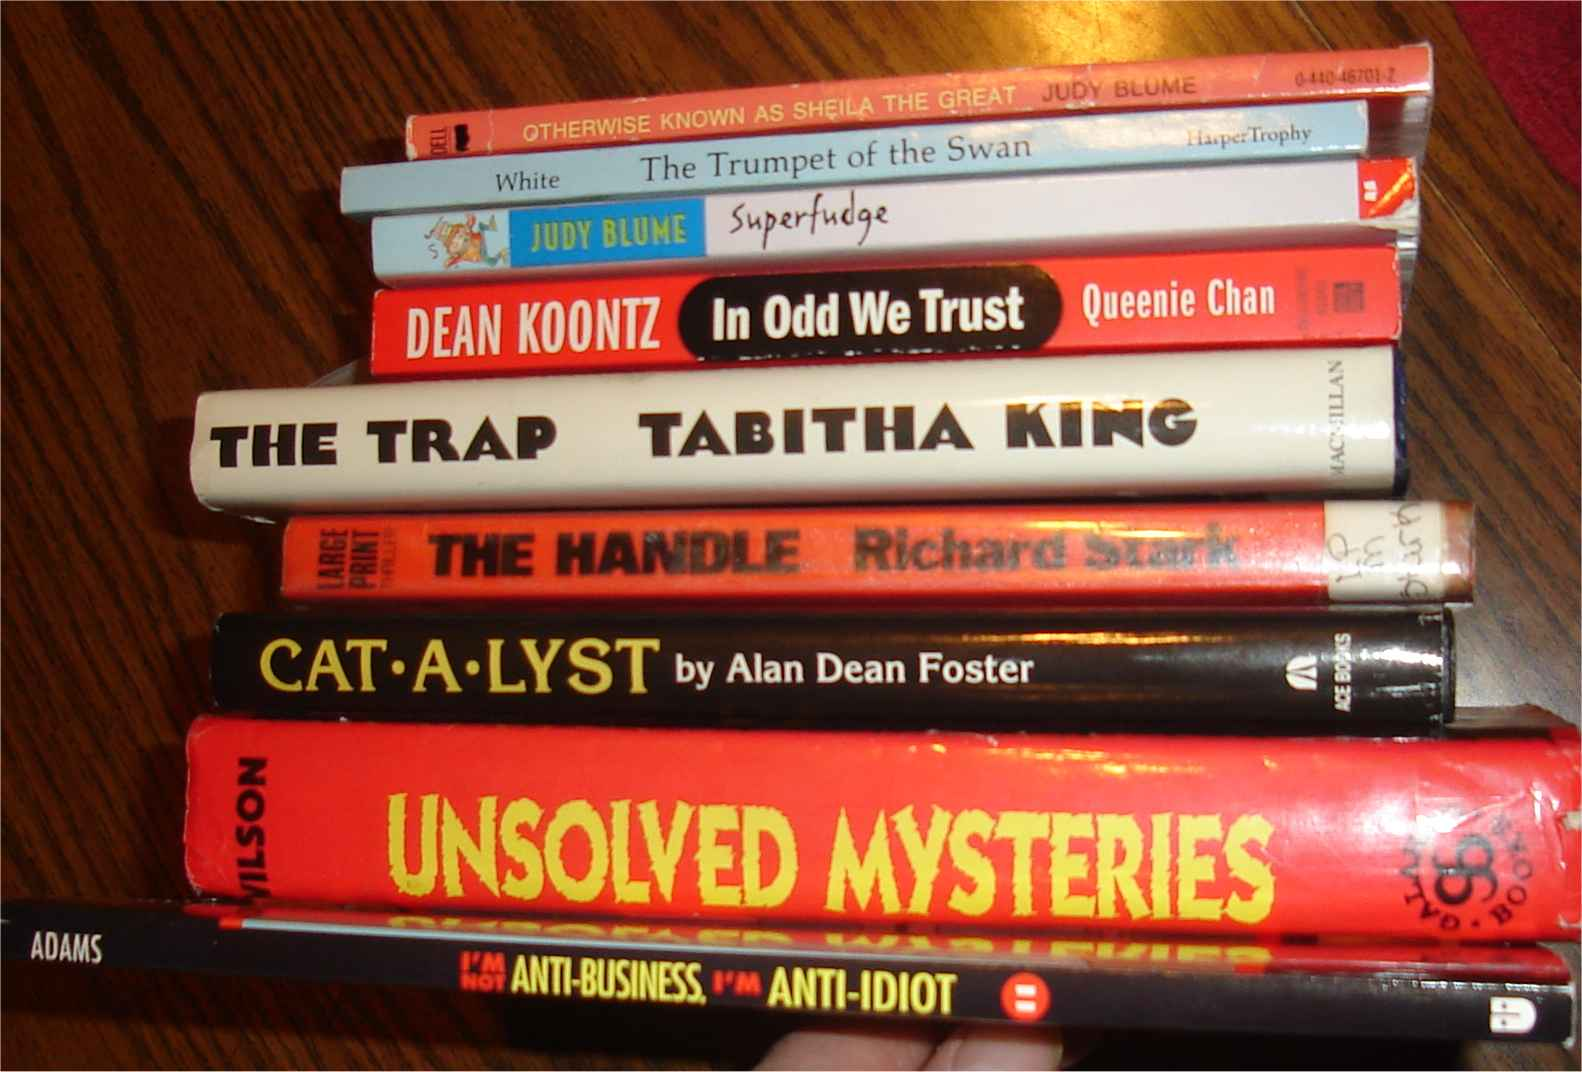 Some books from Hooked on Books